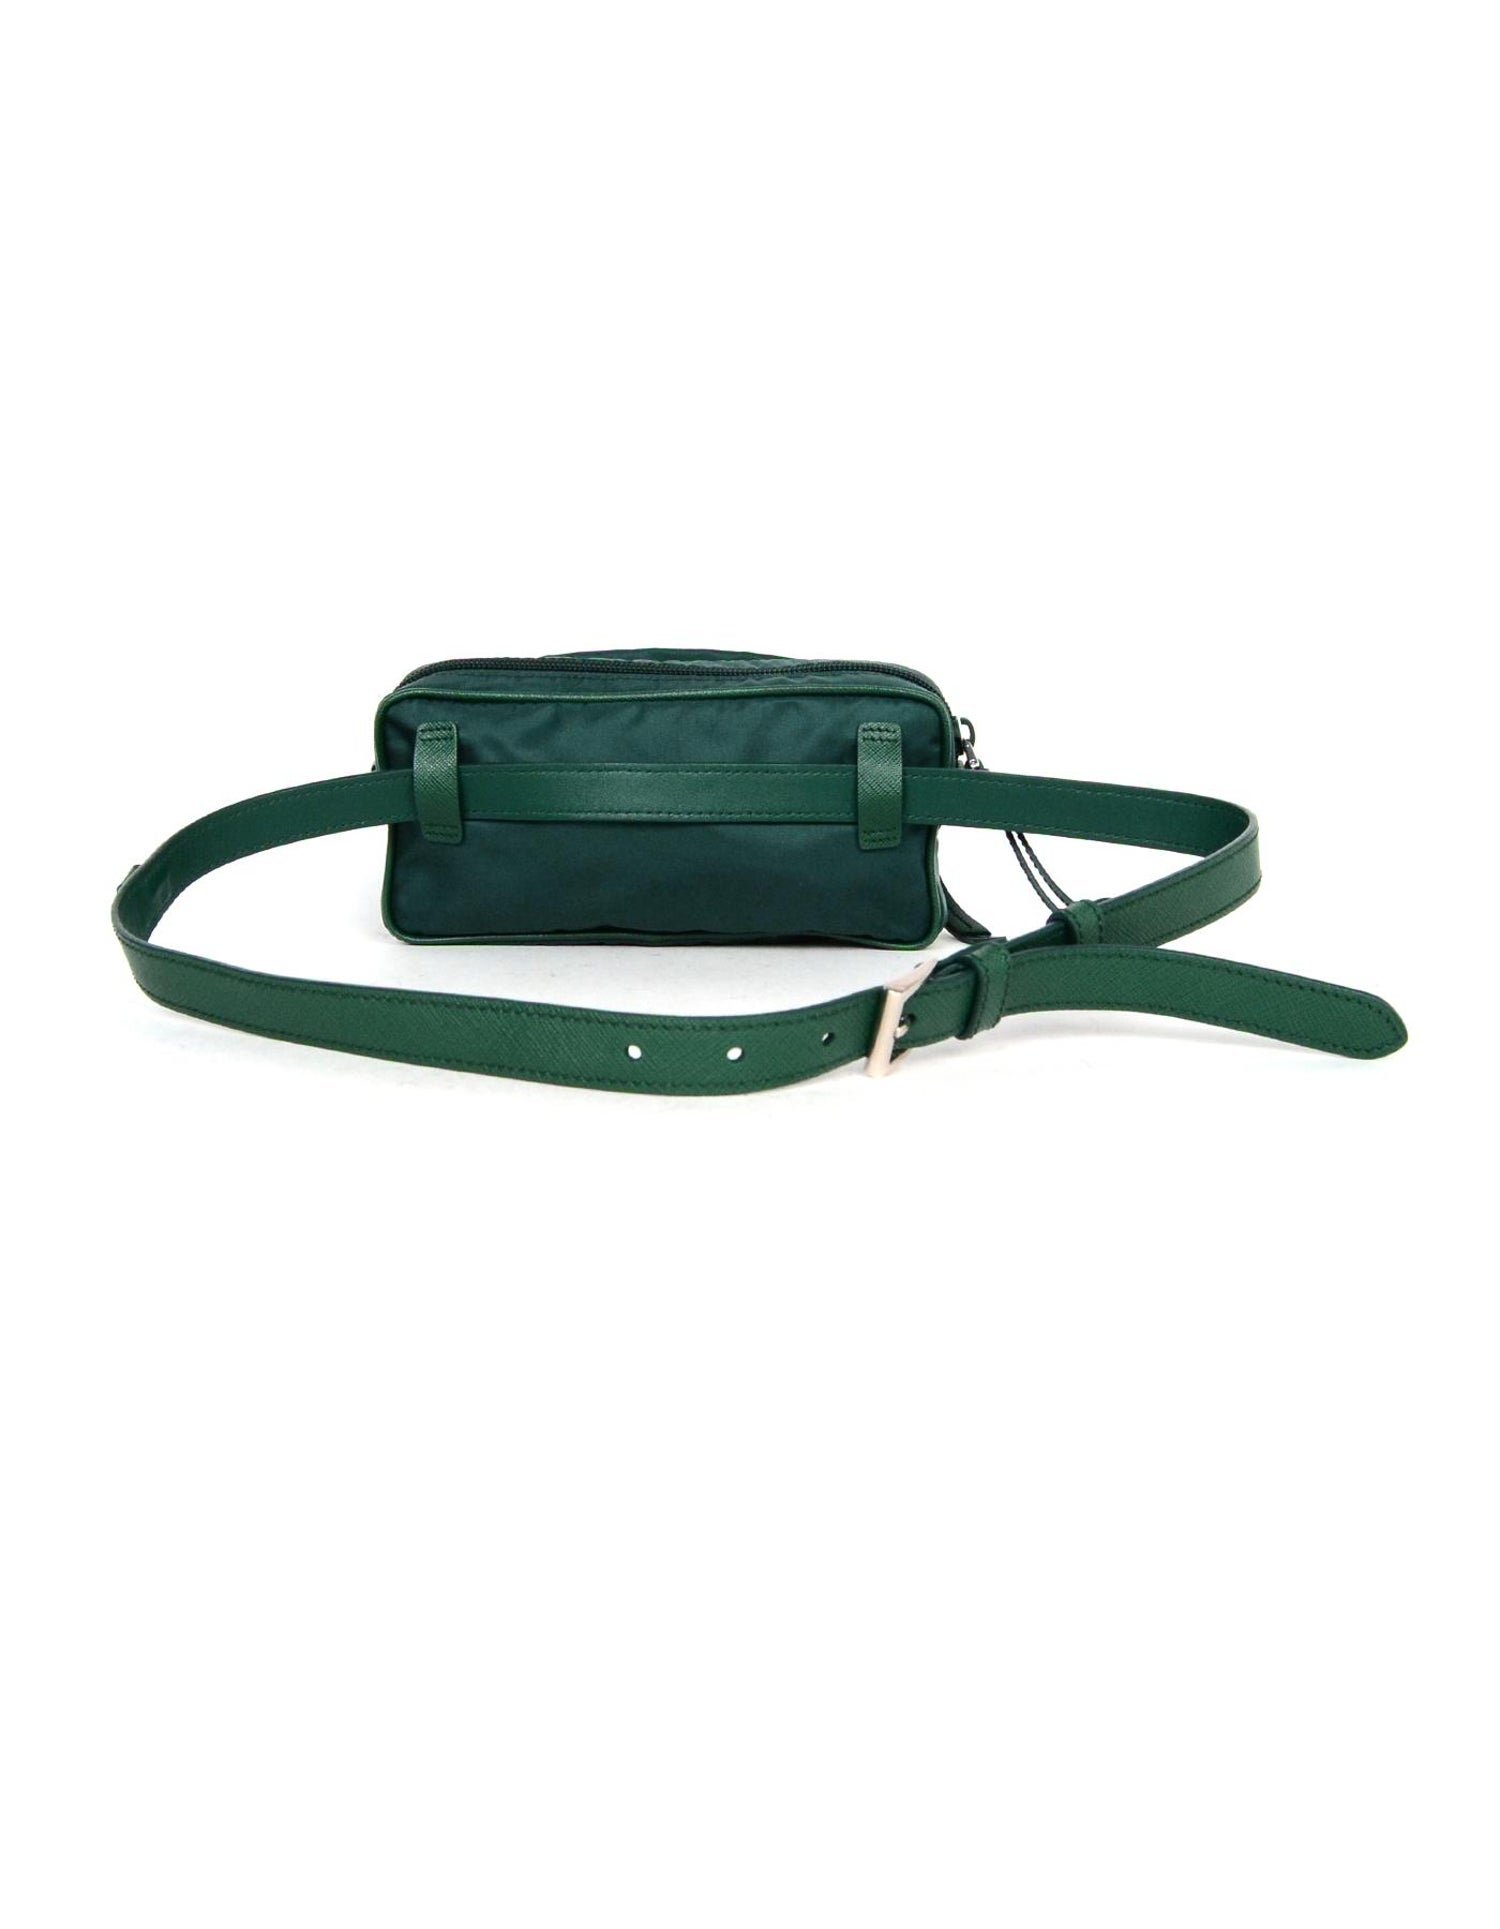 c3d352728487 Prada Green Nylon Small Fanny Pack/ Belt Bag 30